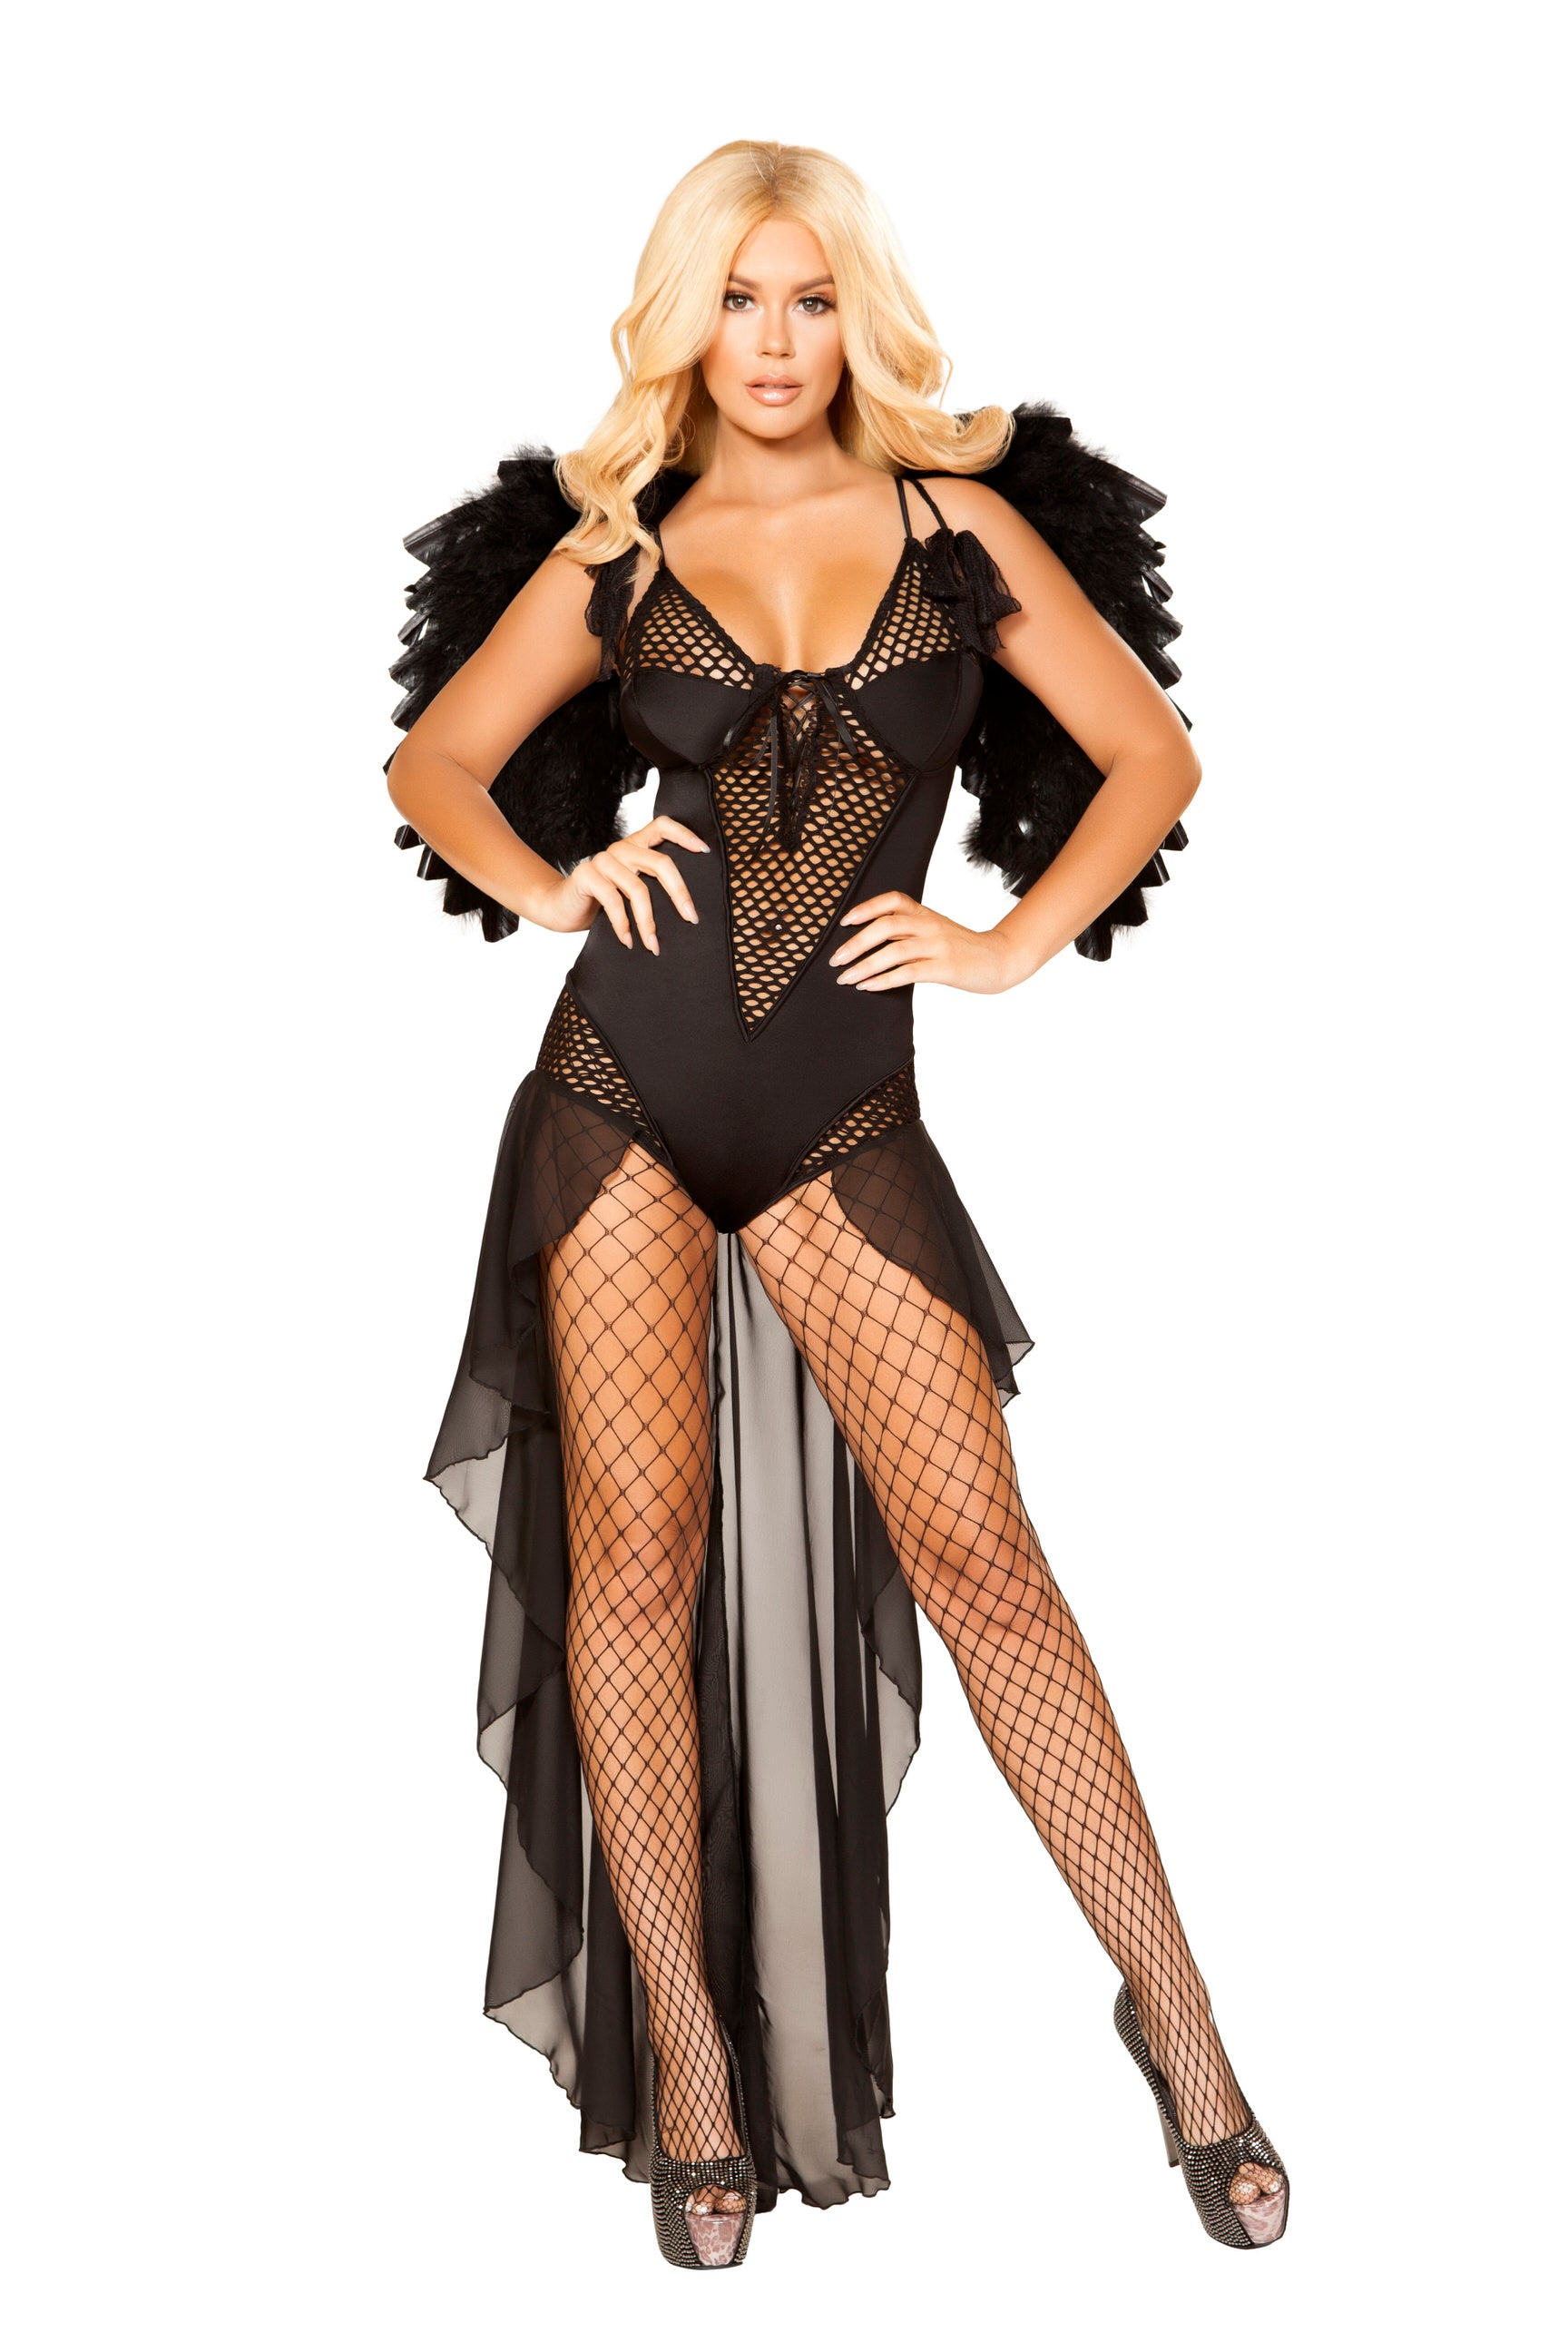 4868 - Roma Costume 1pc Angel of Darkness Fallen Black Angel Feather Wings